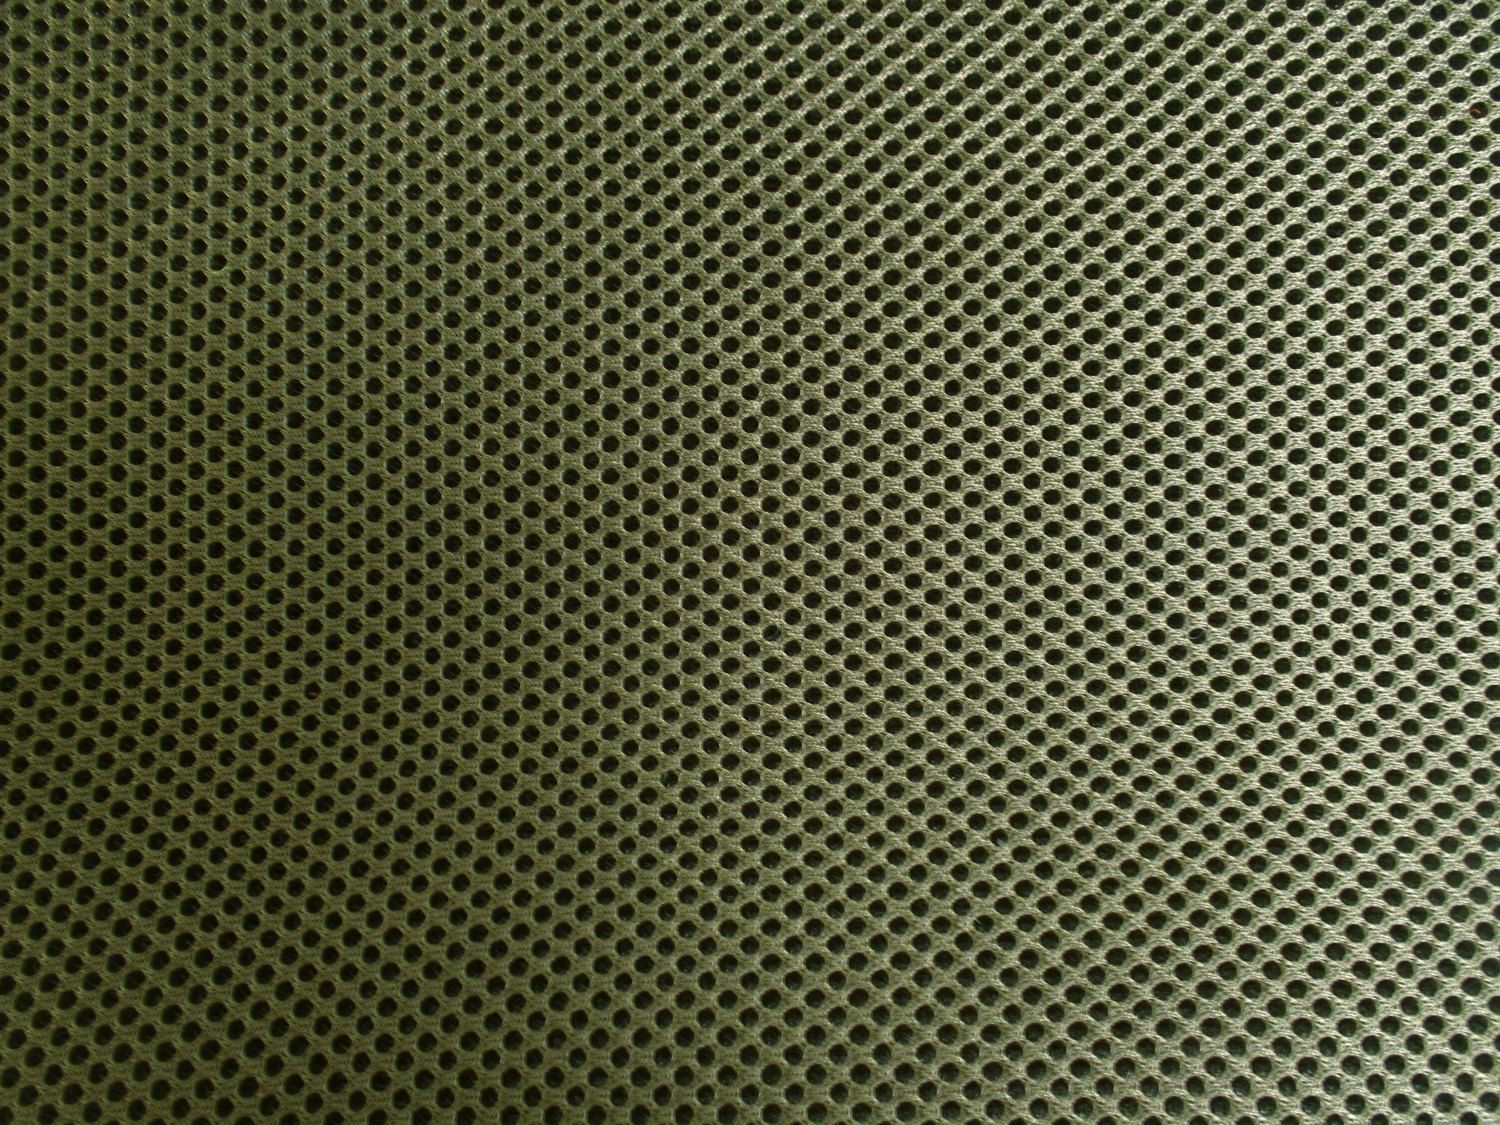 60 Quot Wide Padded Foam Mesh Fabric Olive Auto Upholstery Bags Shoes Backpacks Straps Crafts Spacer Upholstery Bag Mesh Fabric Fabric